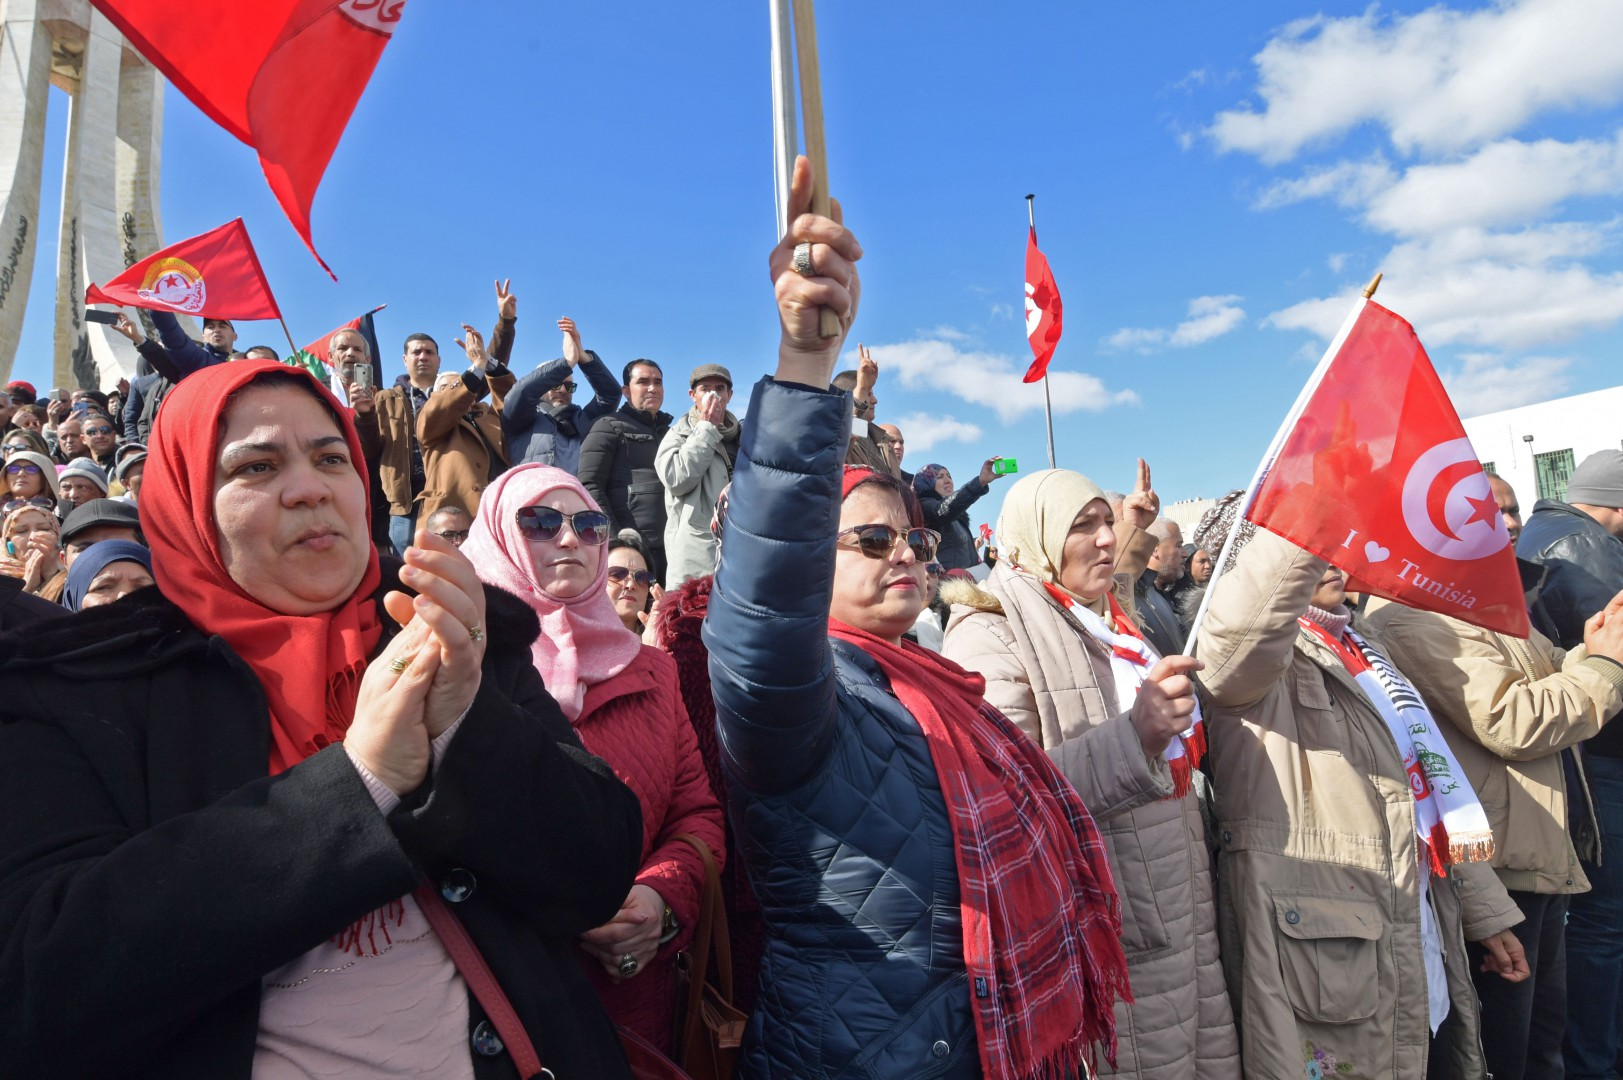 Tunisian teachers shout slogans, wave national flags, and raise protest signs during a demonstration demanding wage increases outside the Prime Minister's office in the capital Tunis on February 6, 2019. (Photo by FETHI BELAID / AFP)